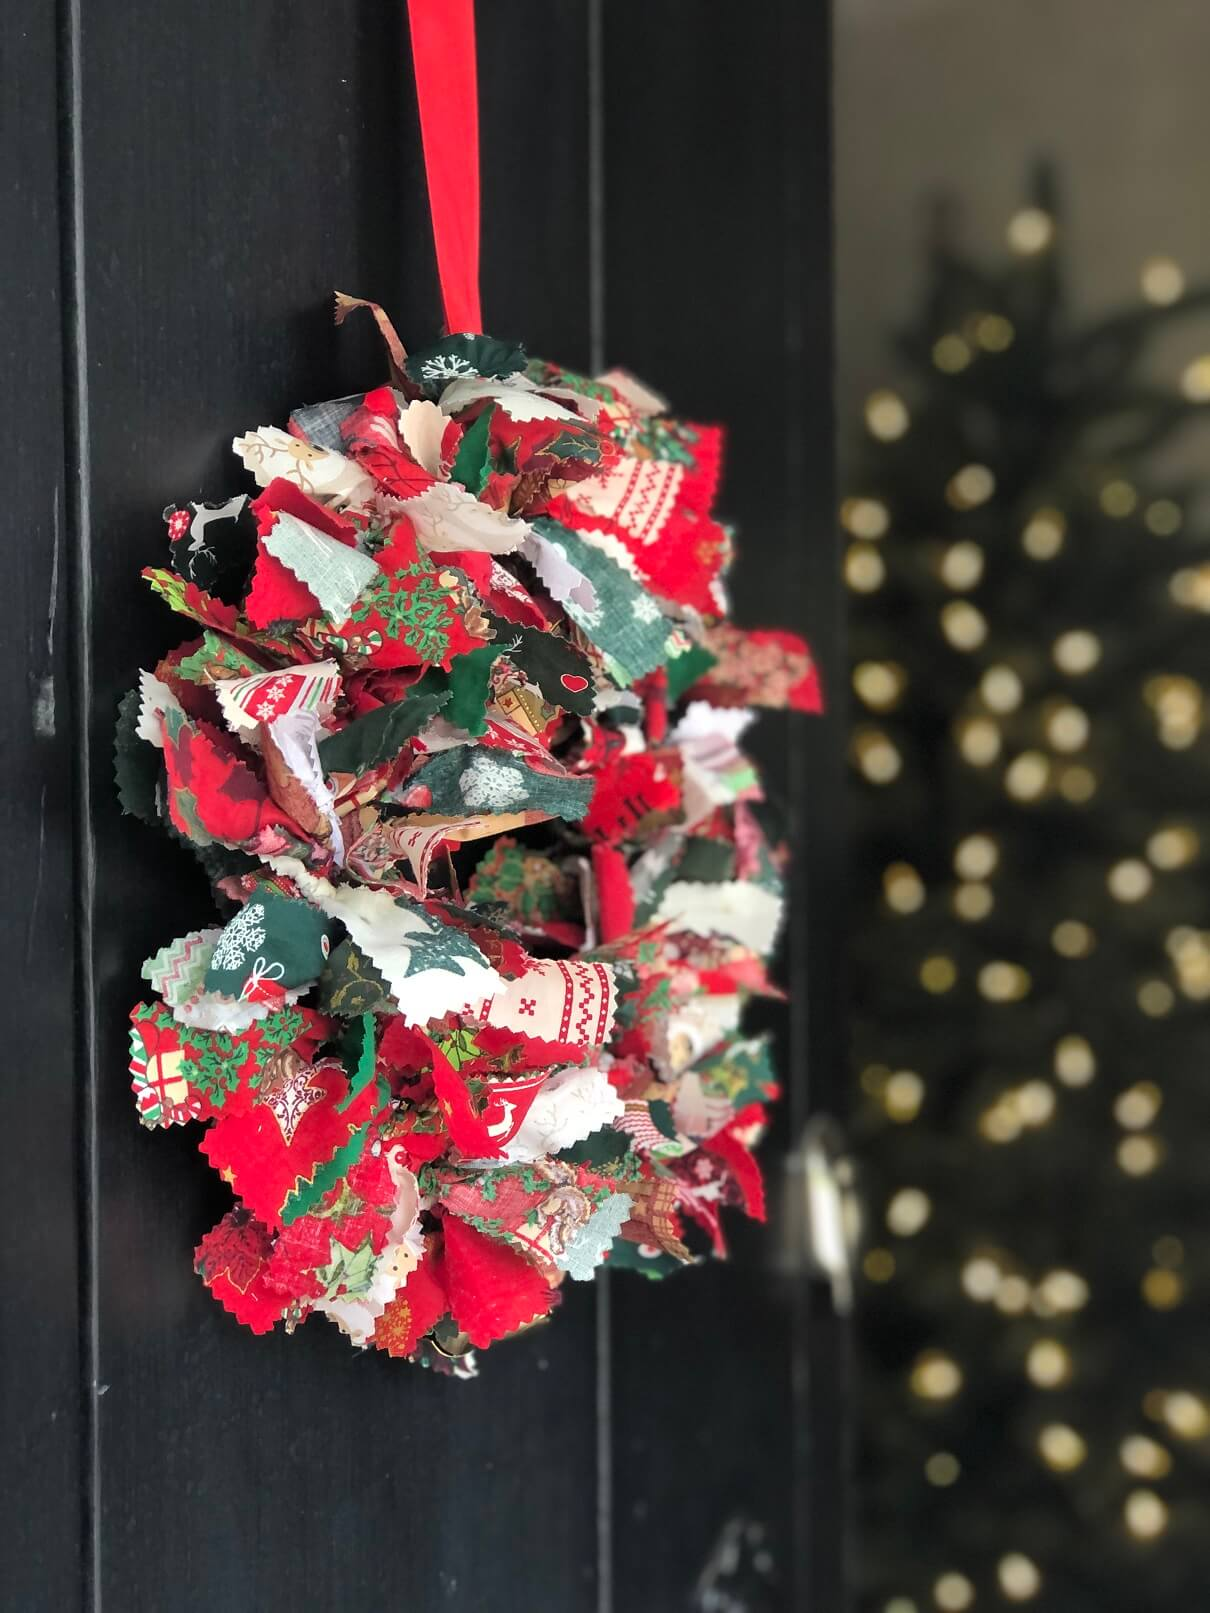 Wreath with Christmas Tree In Background